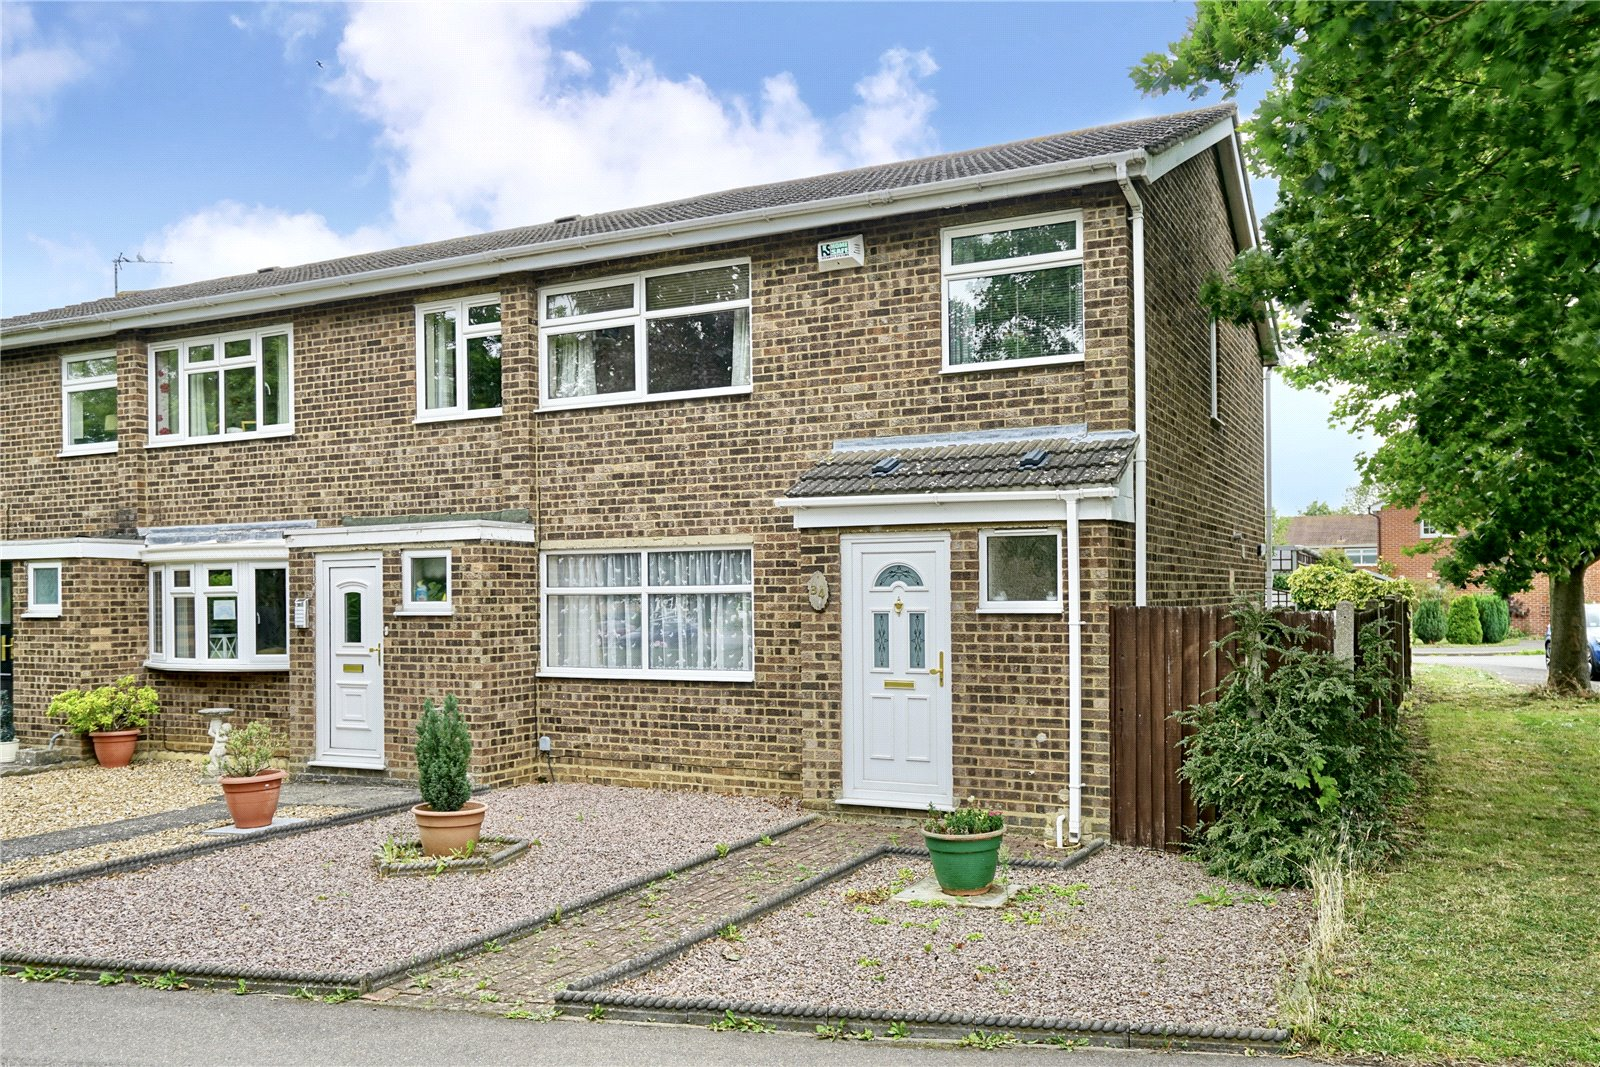 3 bed house for sale in Longfellow Place, Eaton Ford, PE19